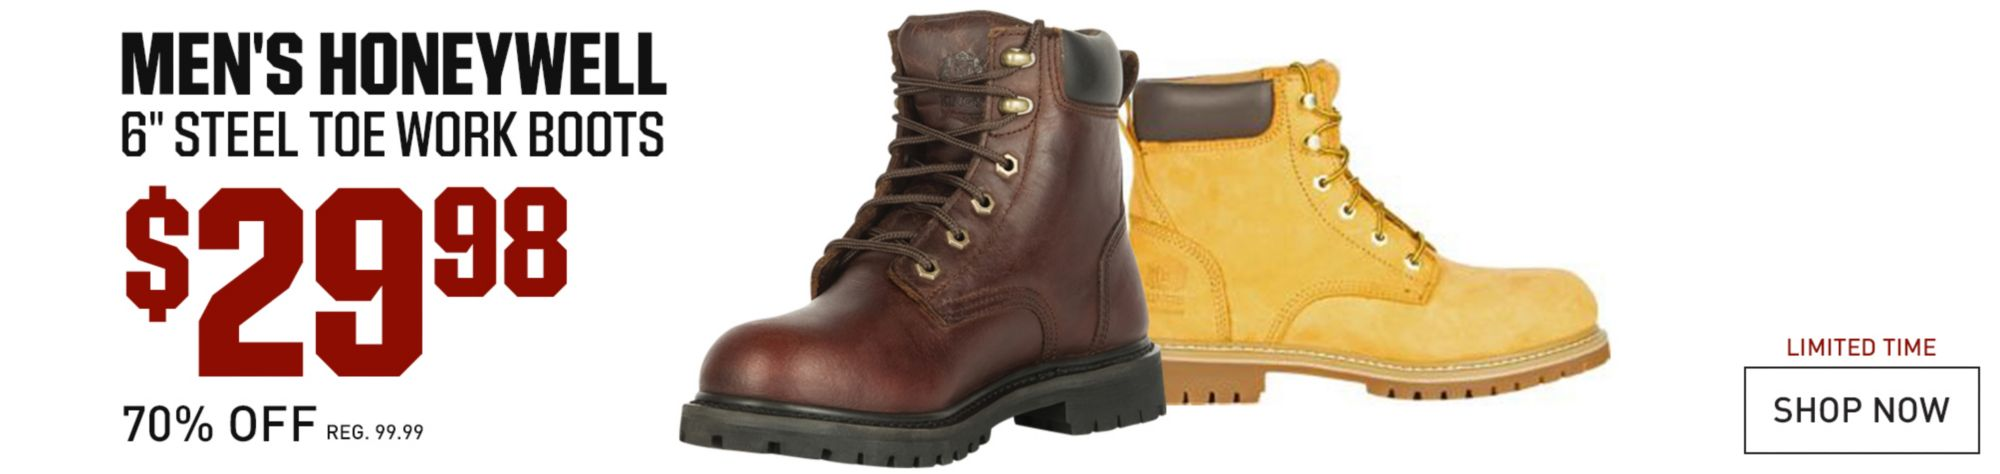 Shop Kings Work Boots